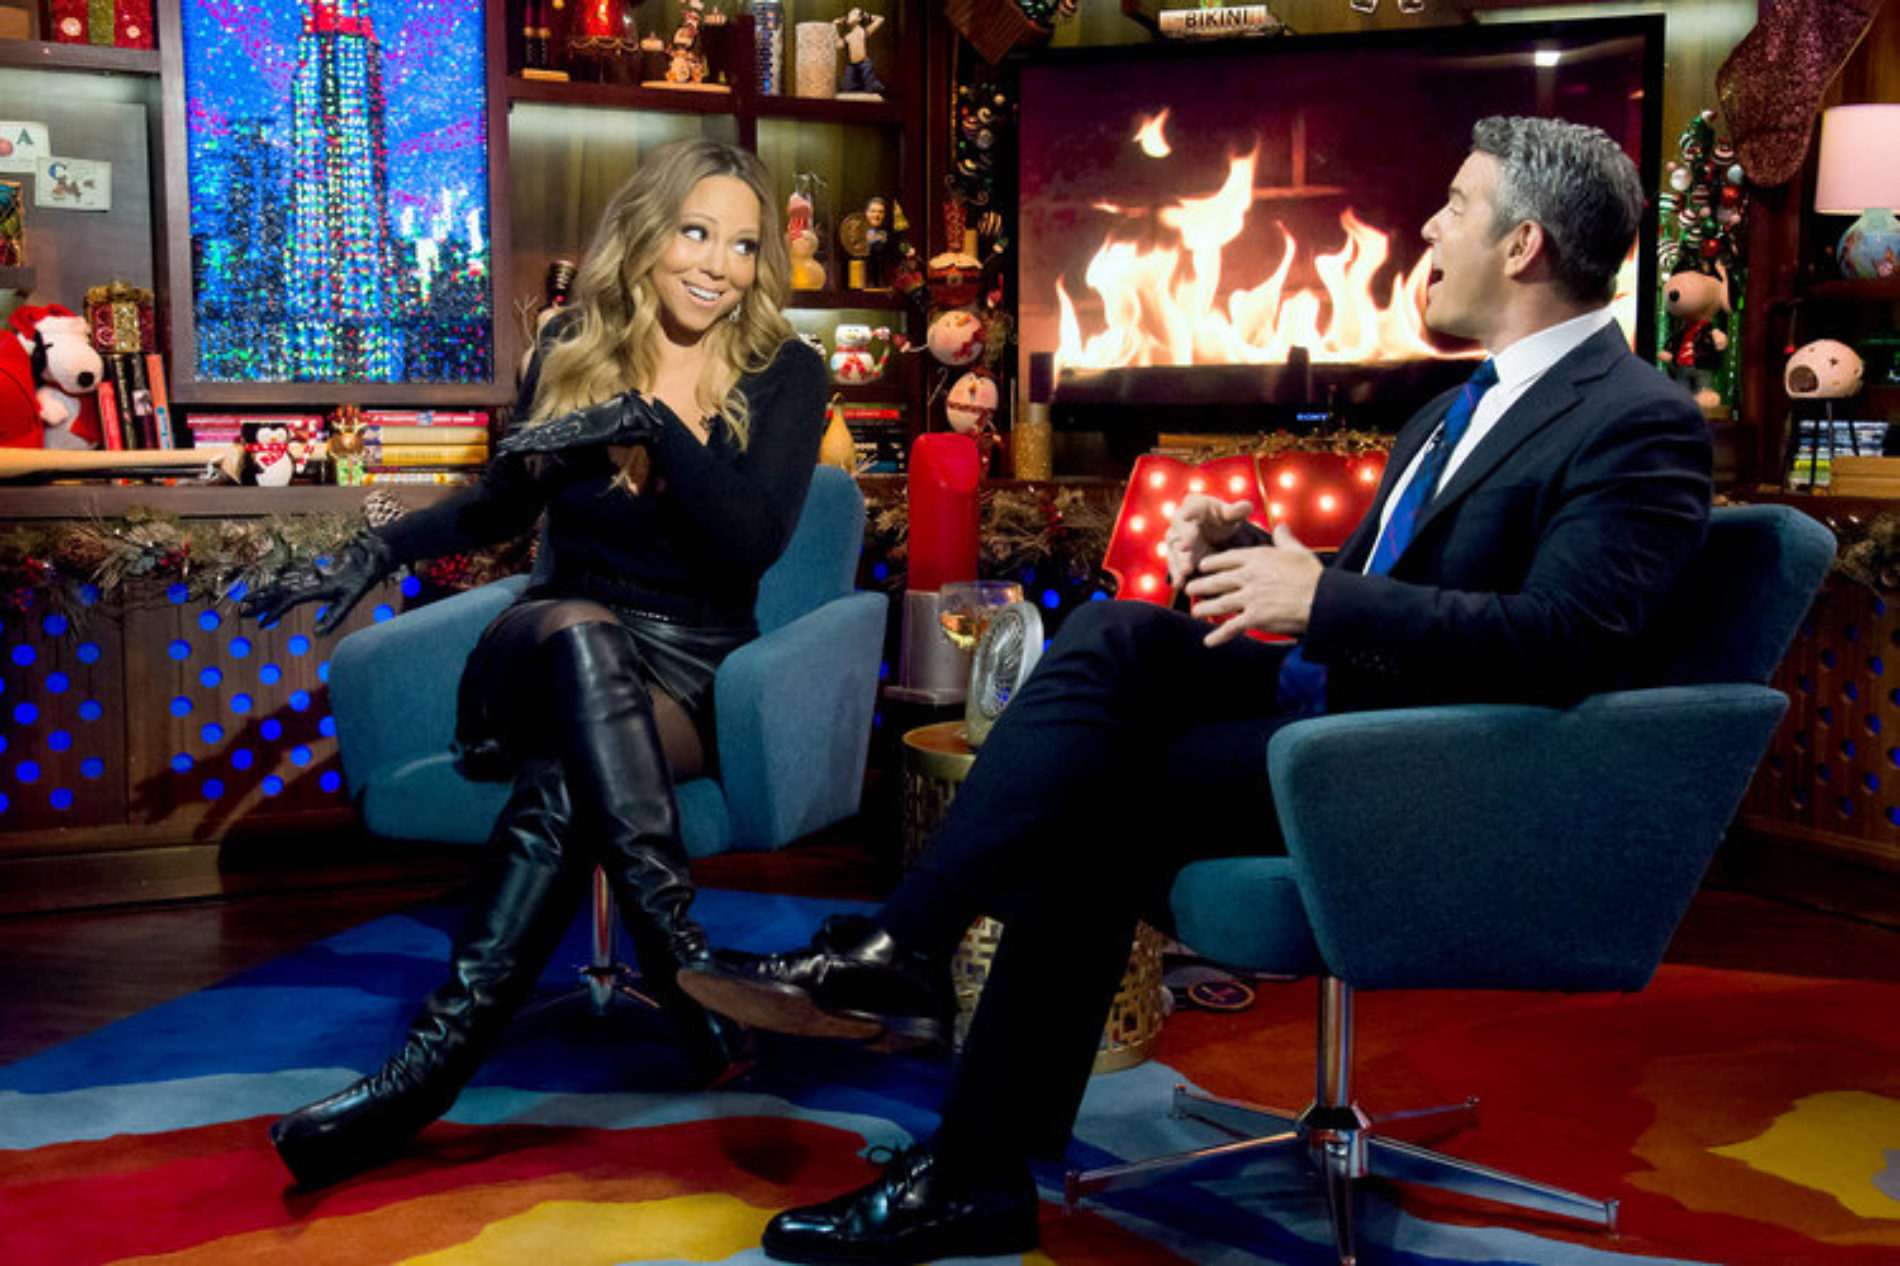 Morning Humour XXVII: Andy Cohen's answer to Mariah Carey's question